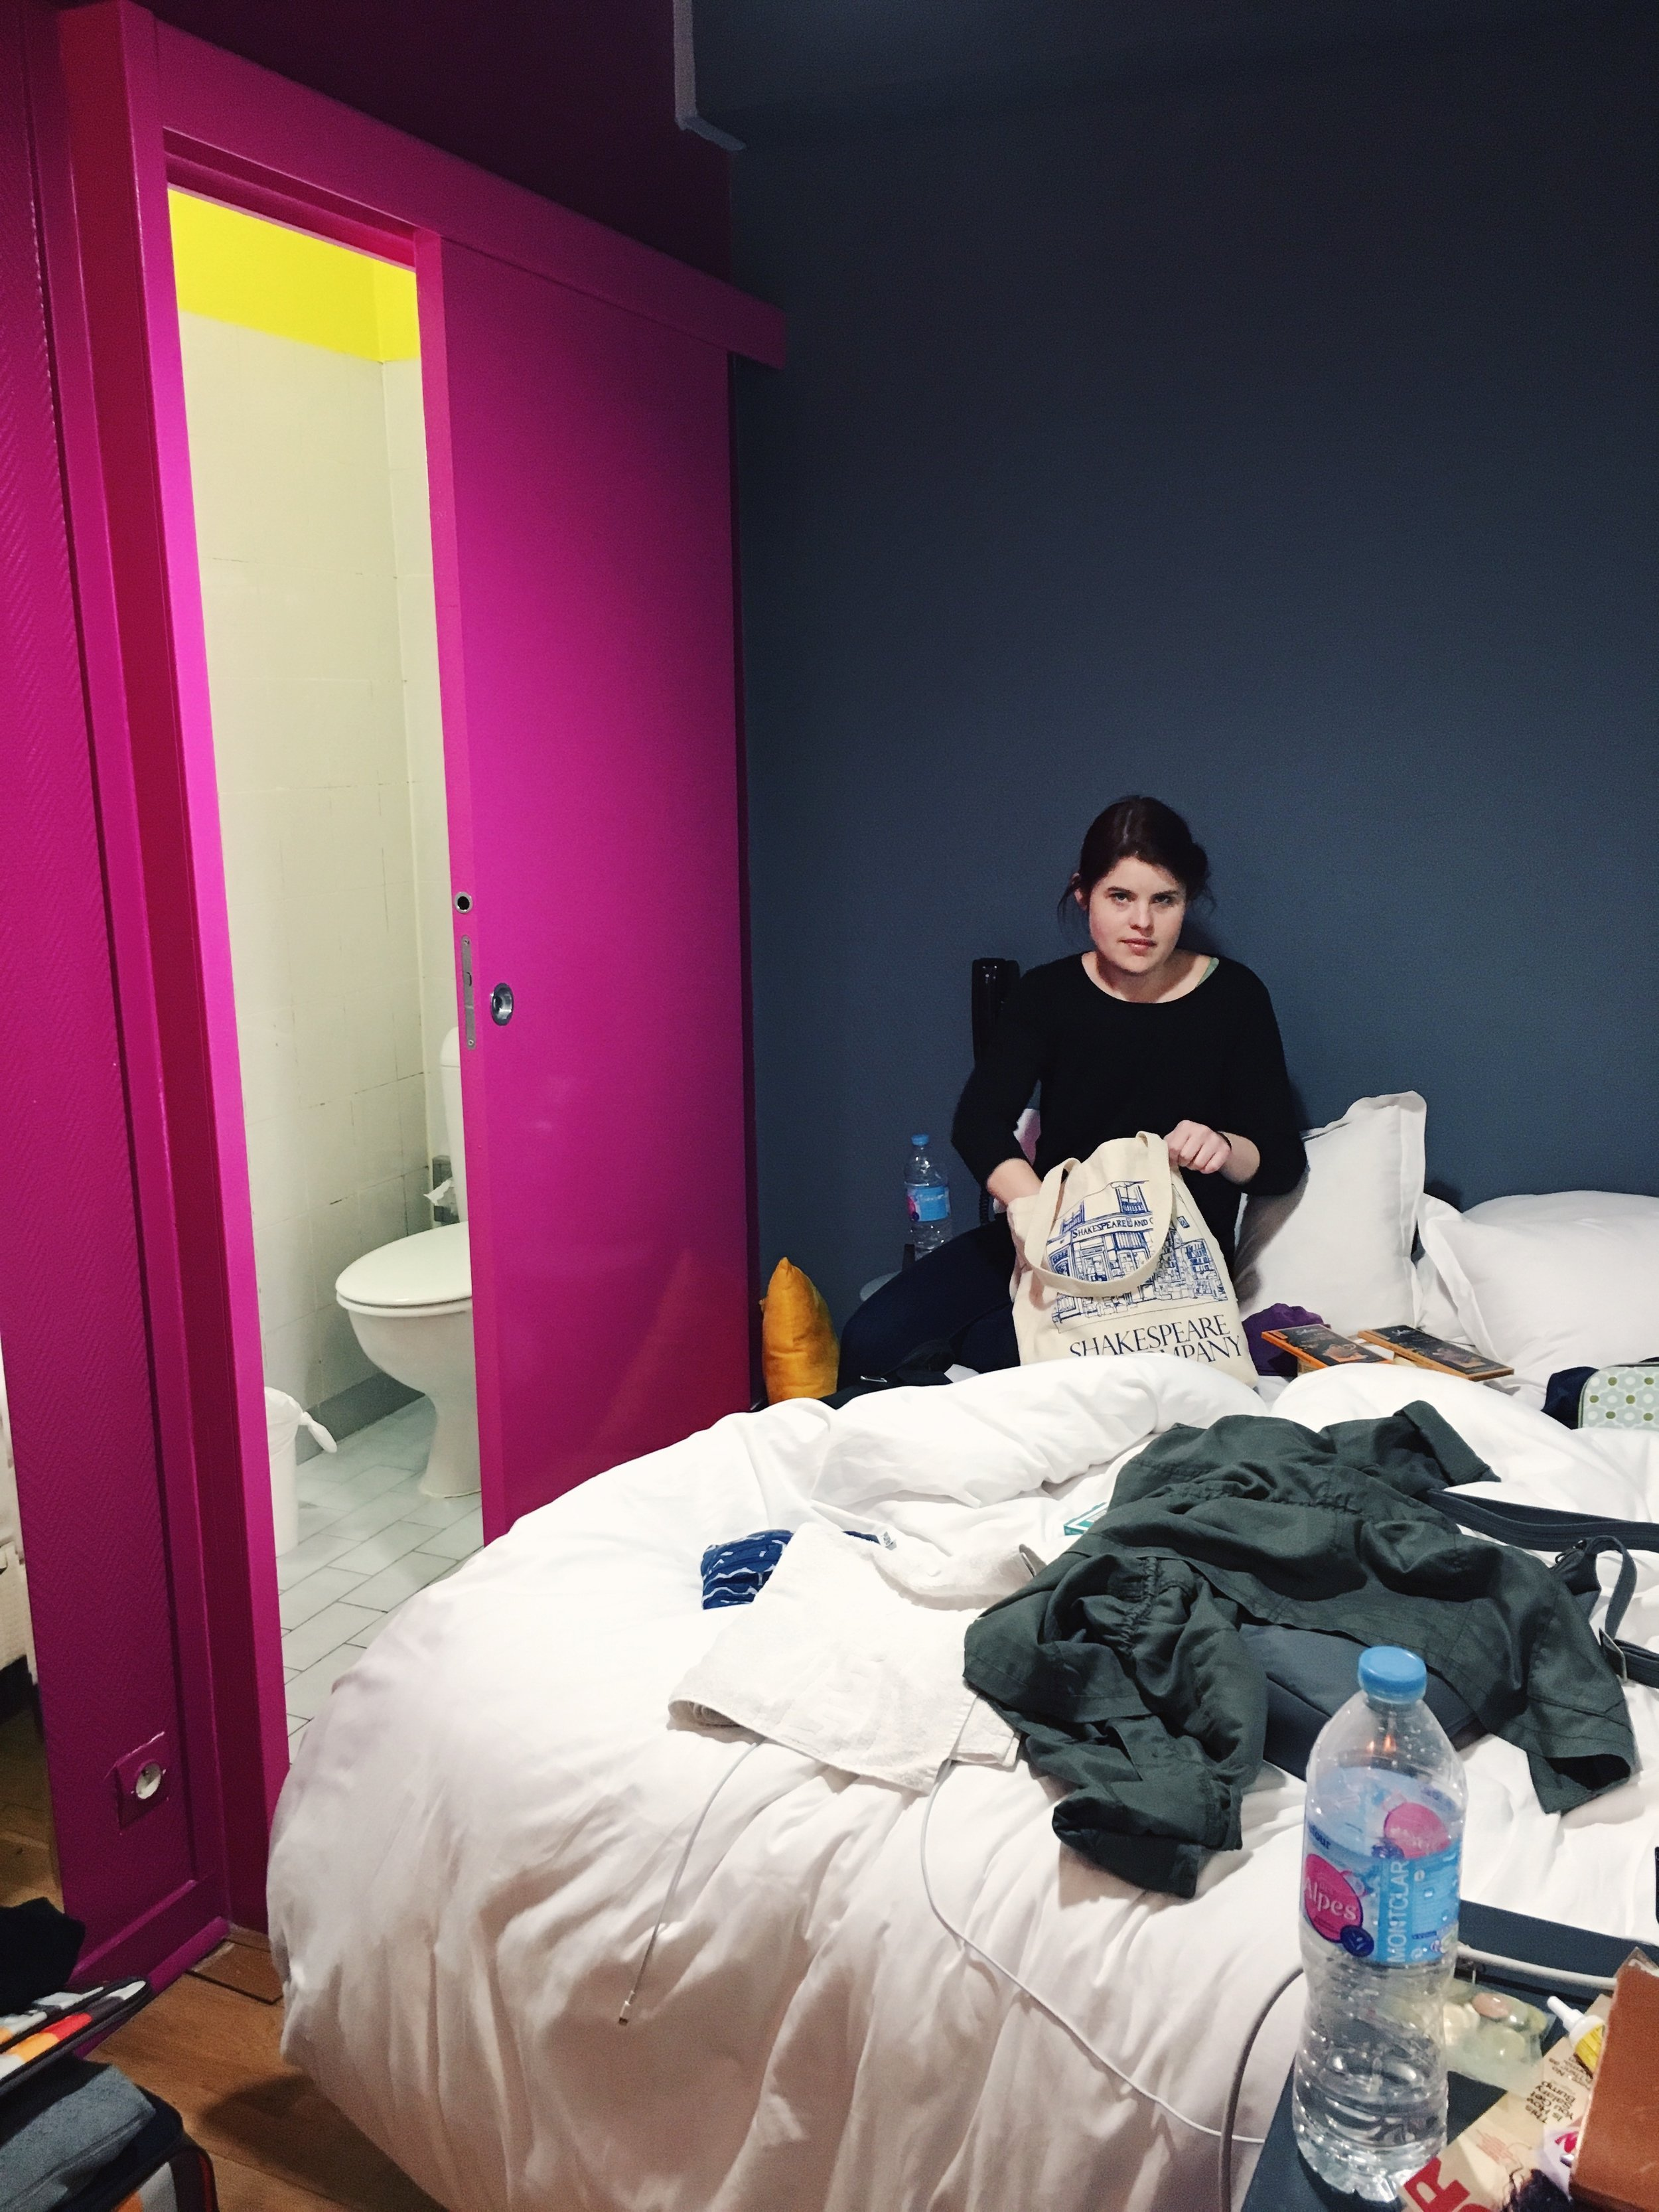 Our tiny private room at the Arty Paris Hostel. I promise I just caught Kayla off guard, she doesn't normally look that angry.